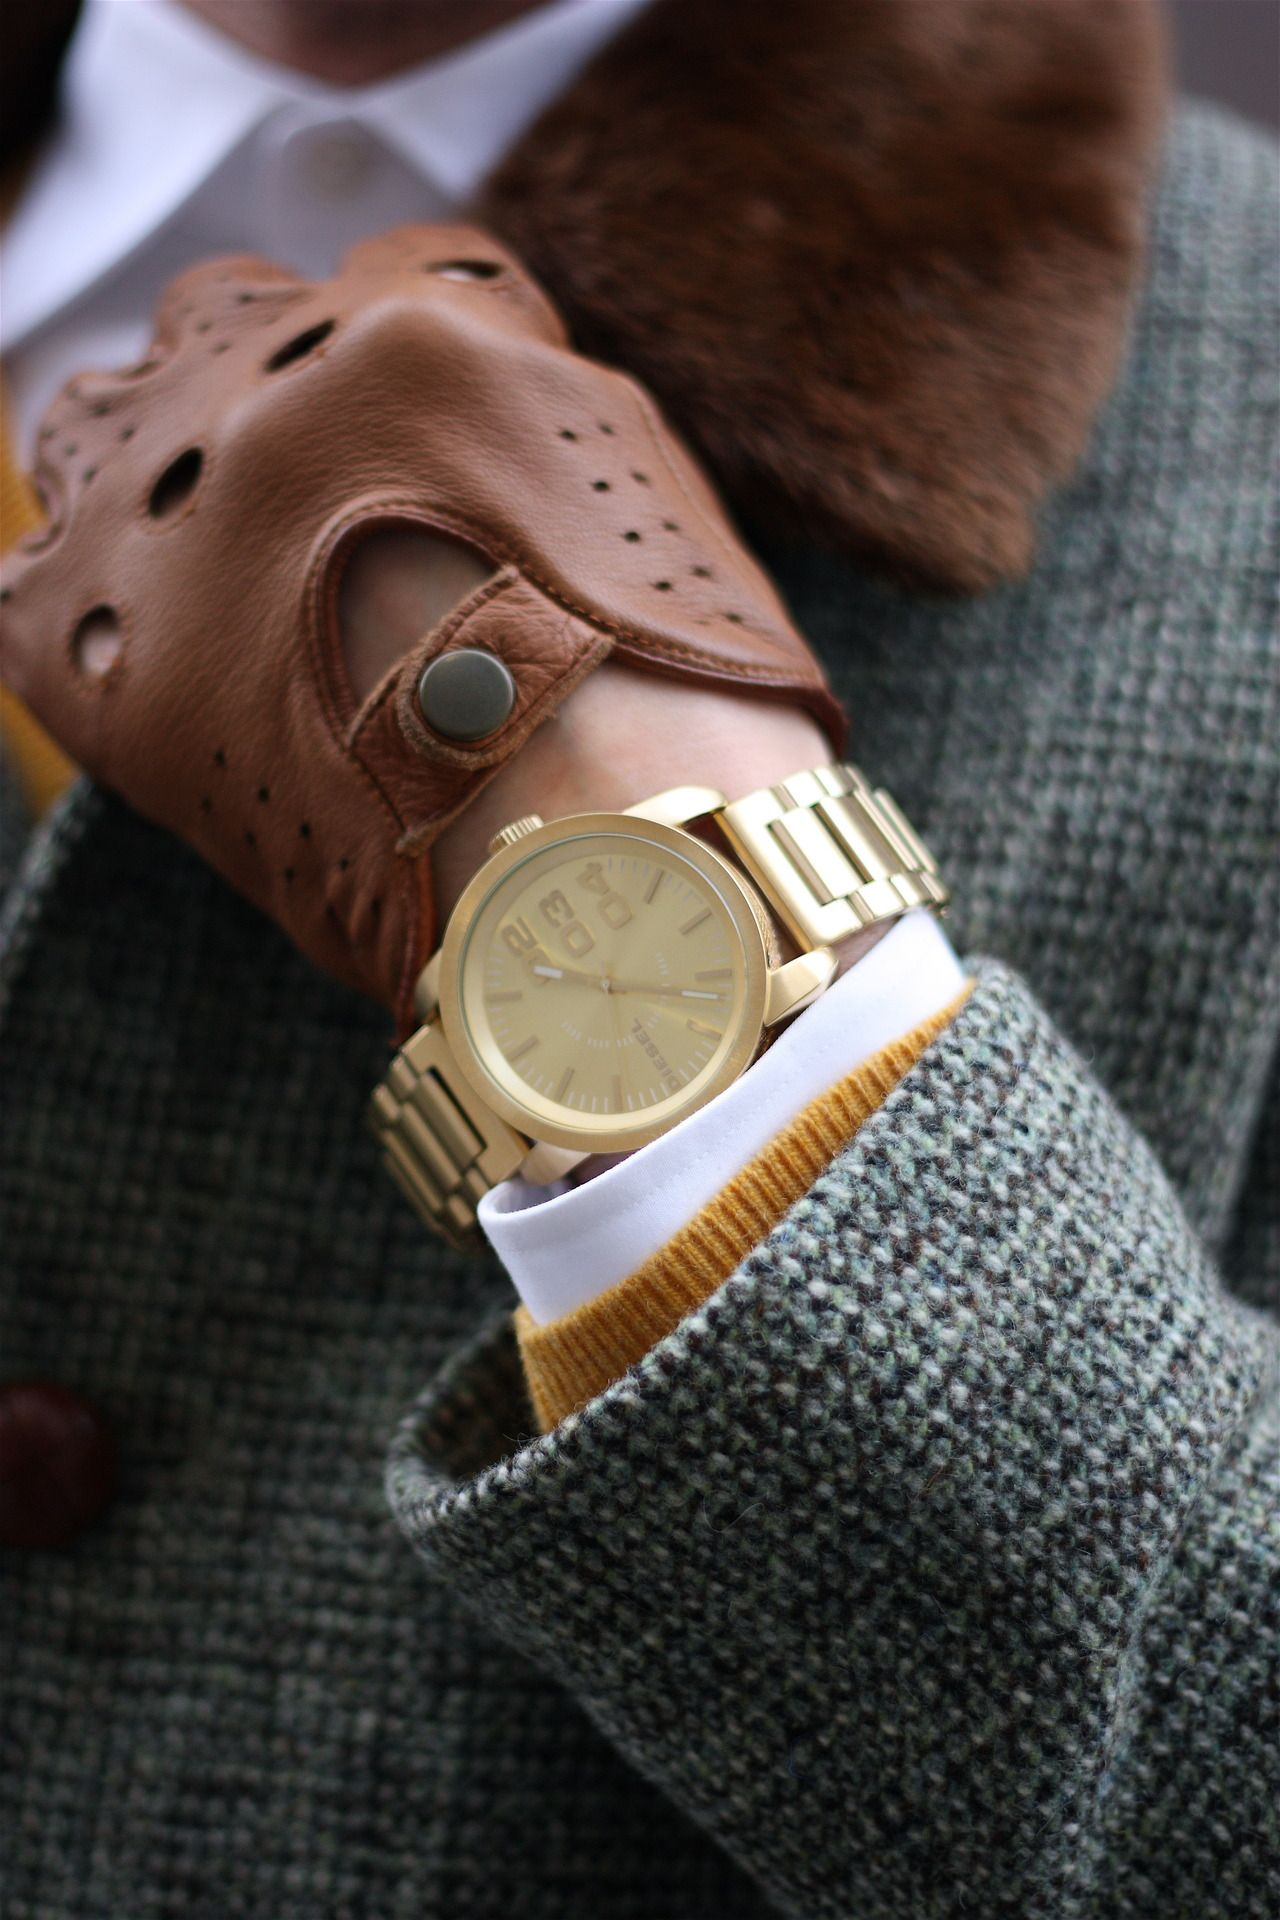 Mens down gloves - Gold Watch By Diesel And Nordstrom Driving Gloves